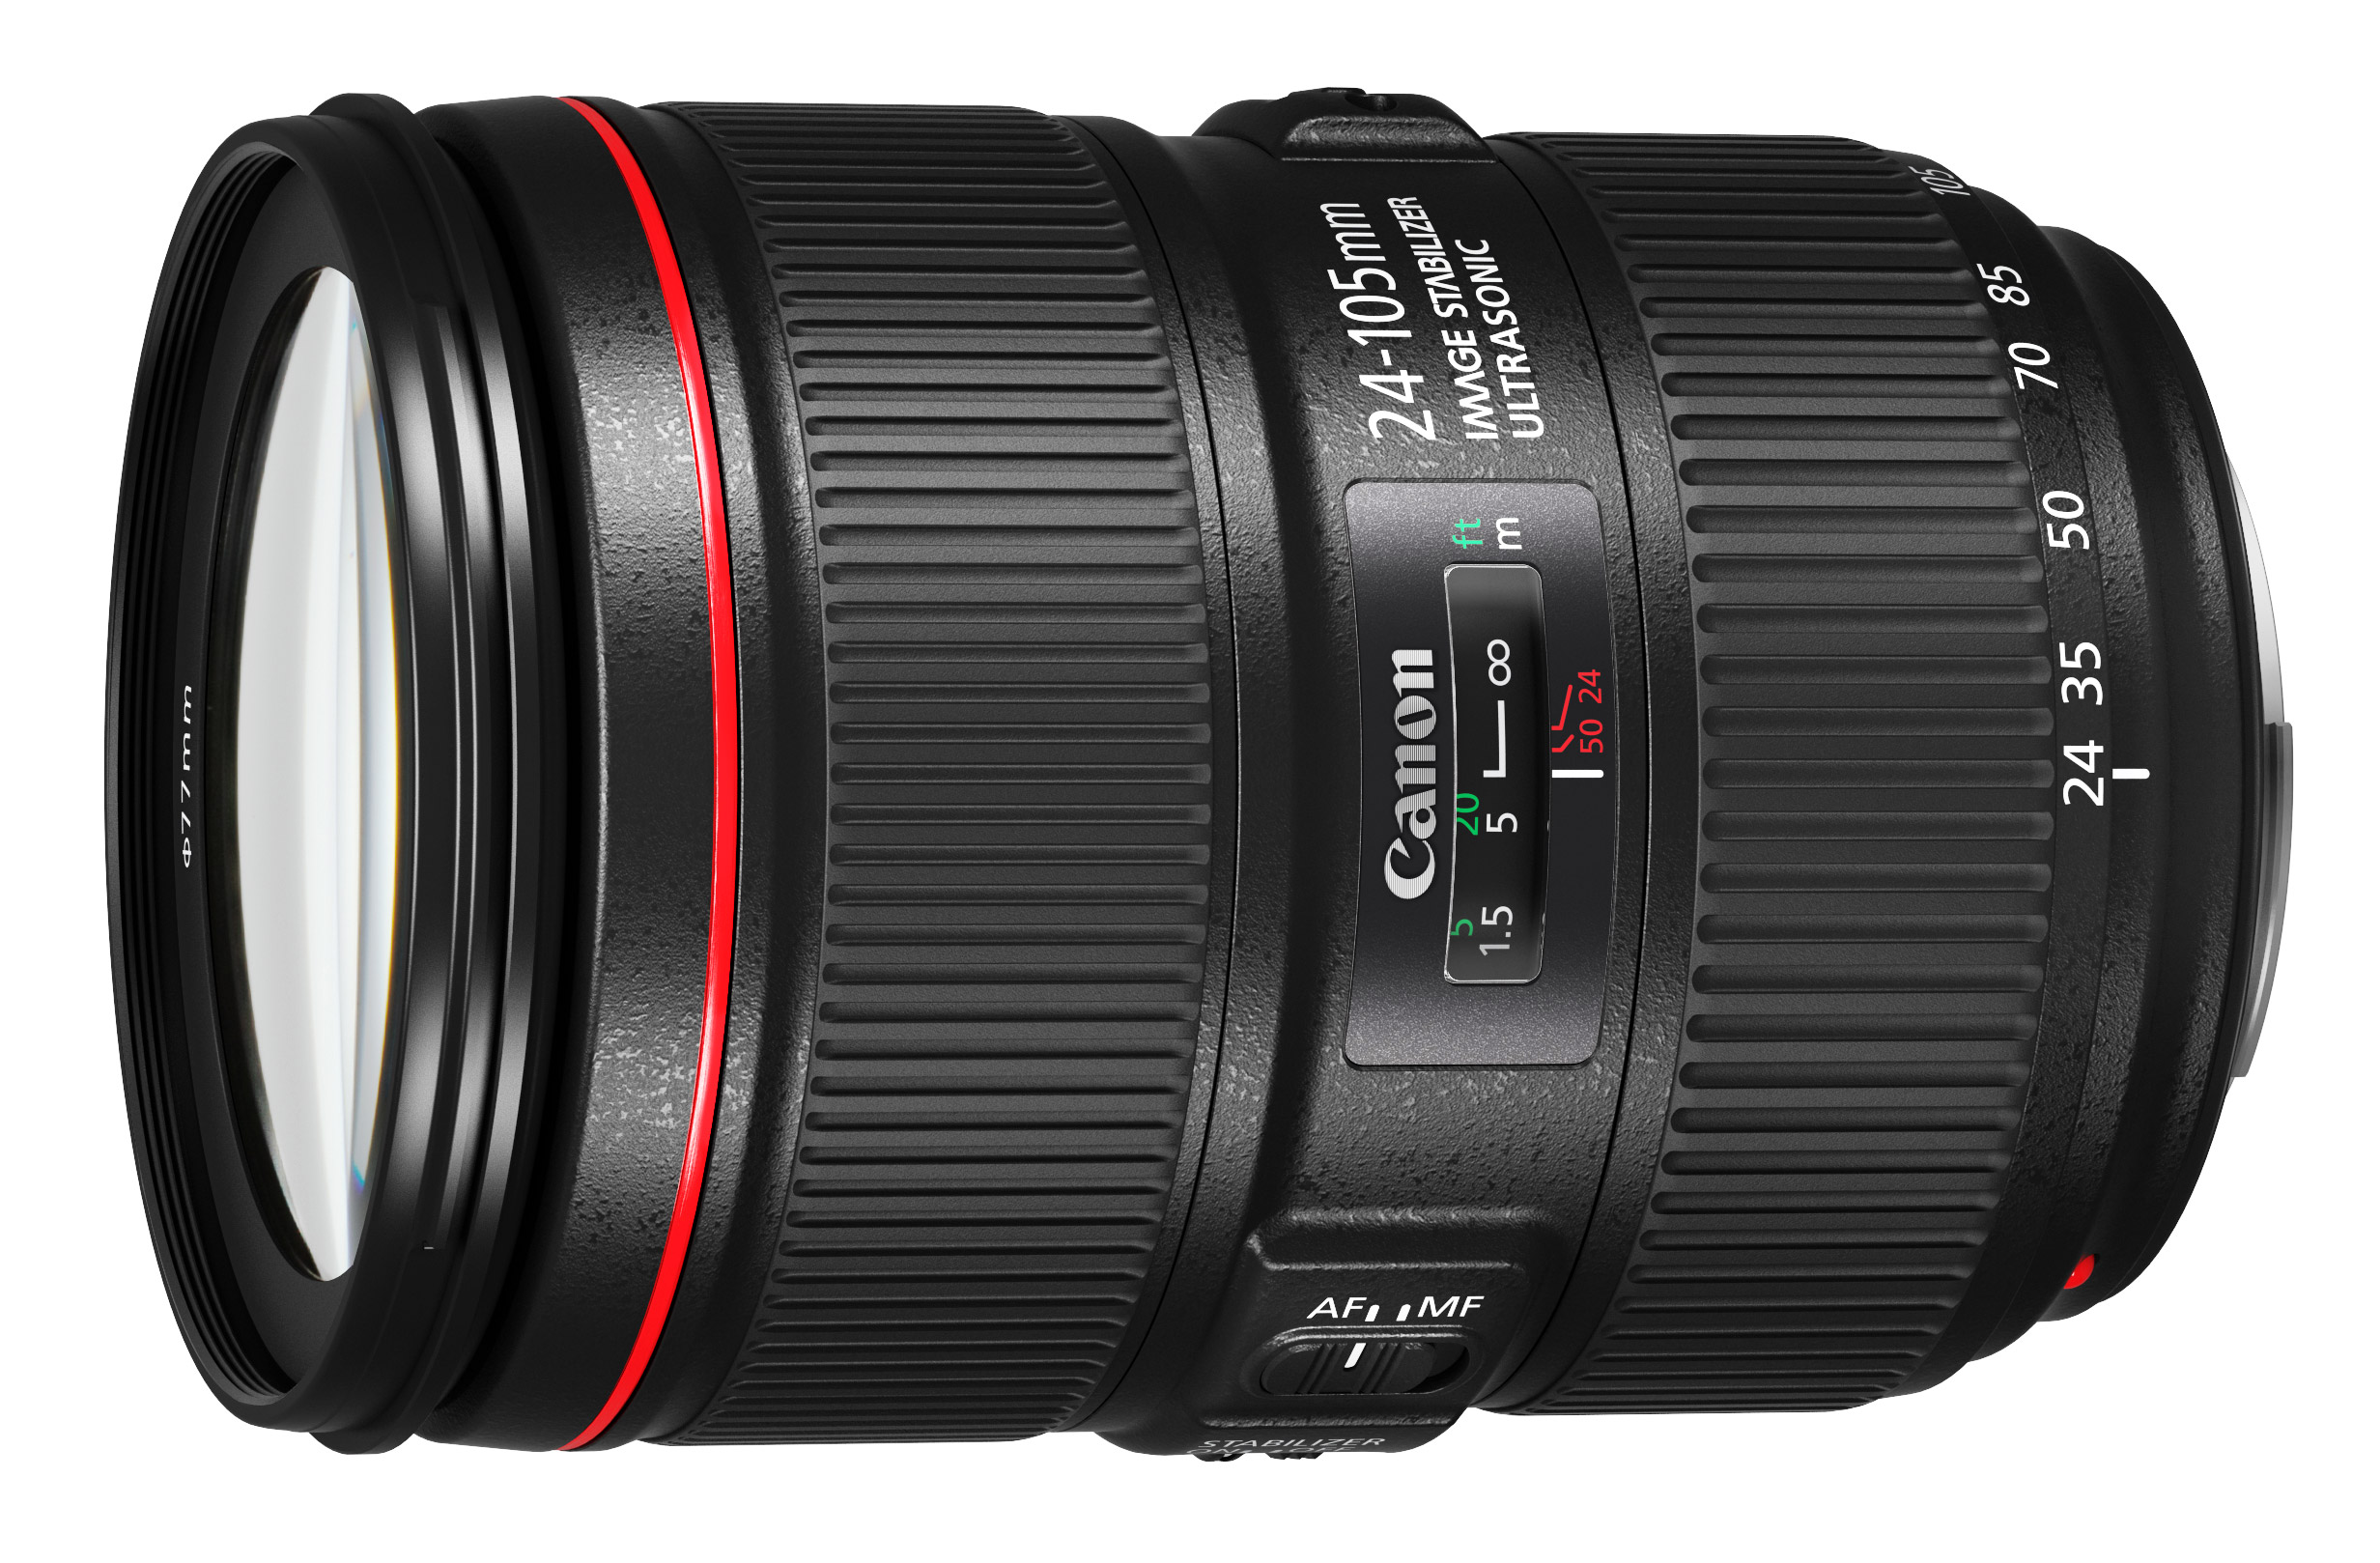 Canon EF 24-105mm f/4 L IS USM II